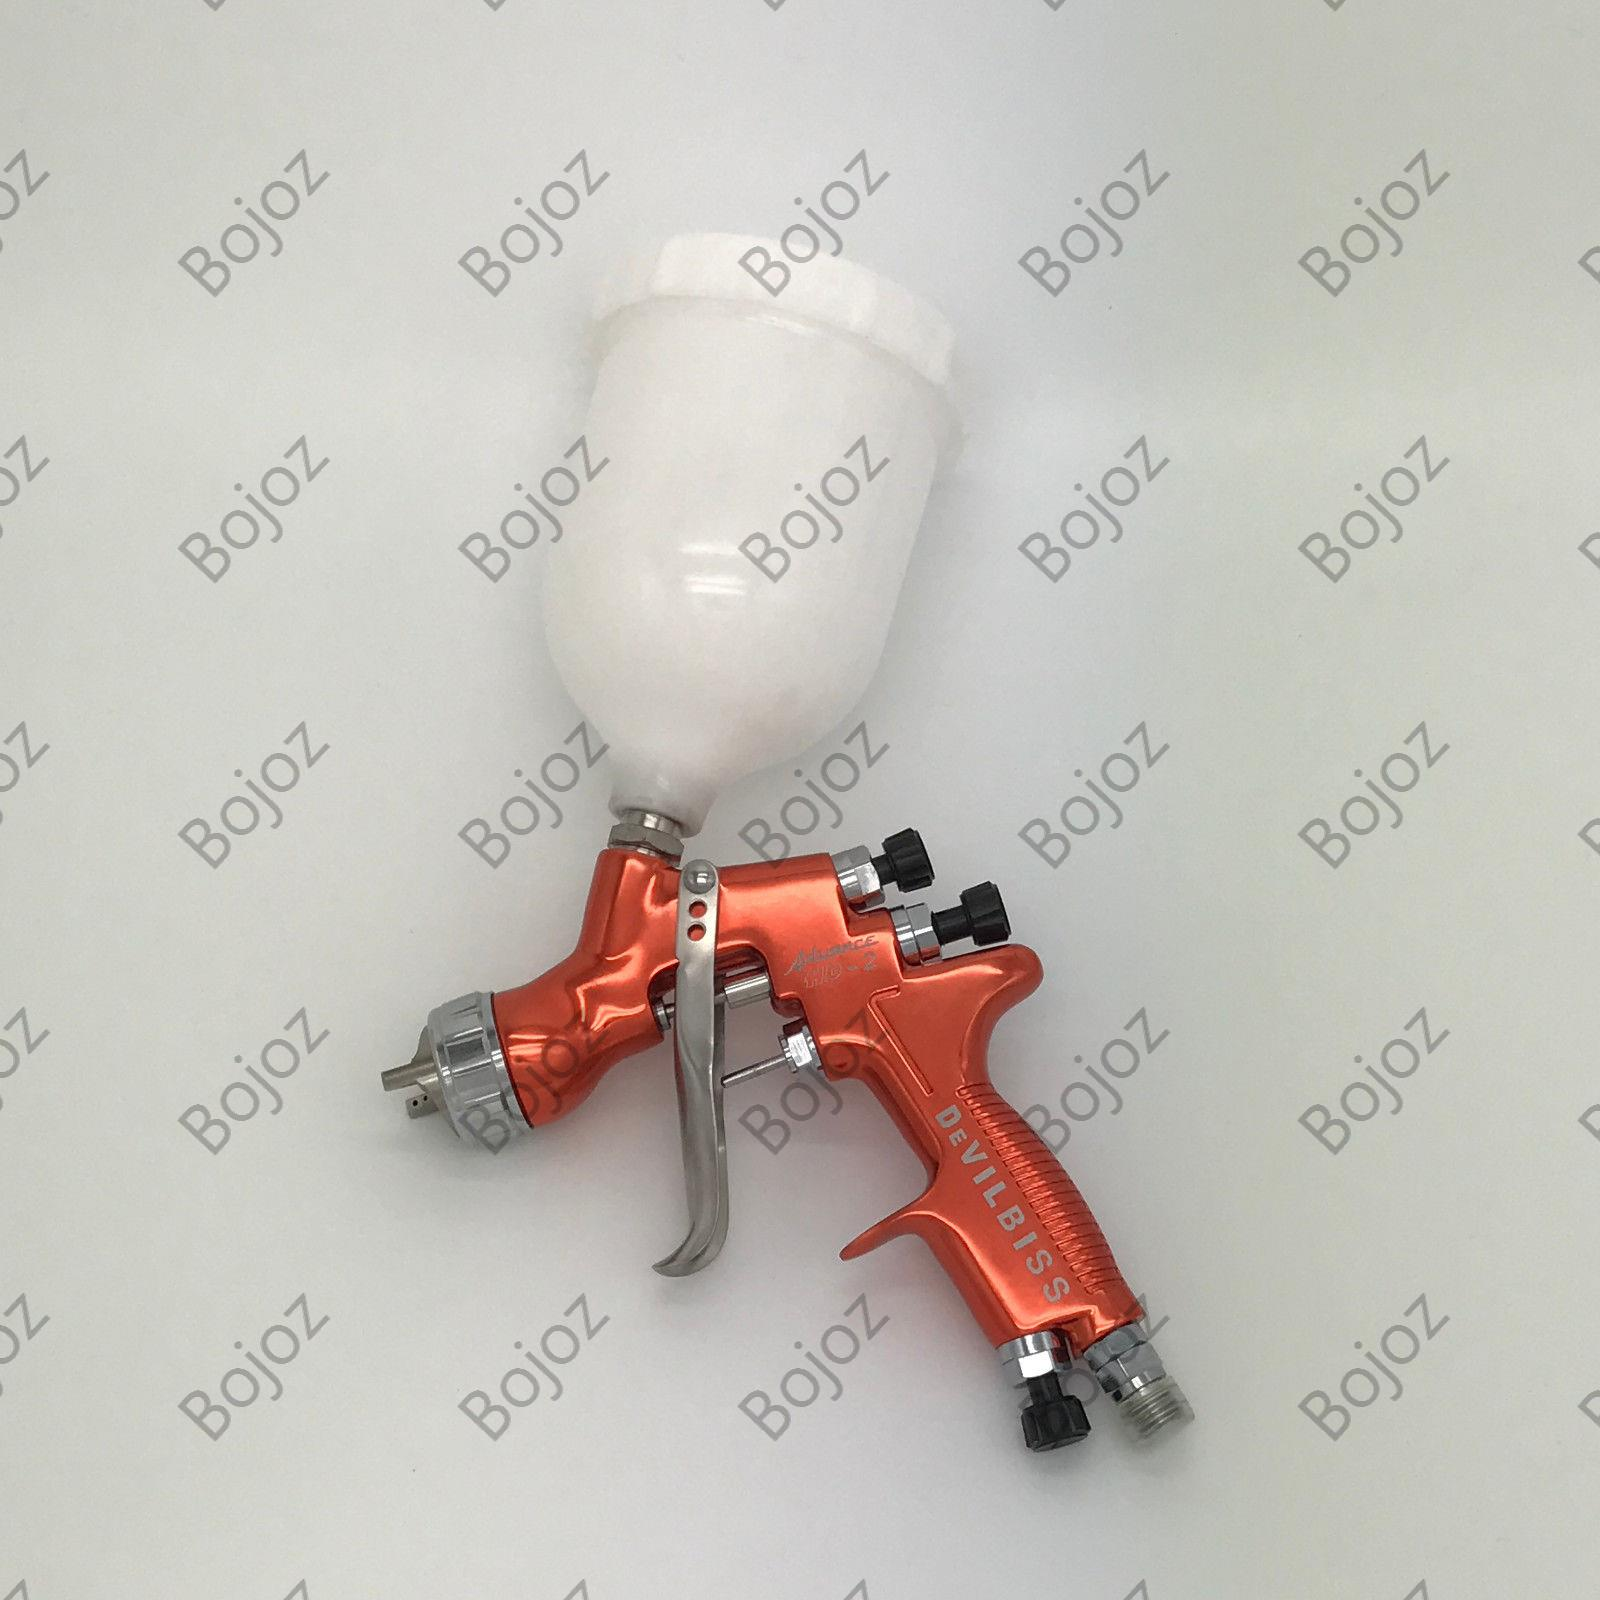 Free shipping Orange color HD-2 HVLP Spray Gun Gravity feed 1.3mm Topcoat Touch-Up Paint Cup for all Auto Paint  W/T 600ml CUP ophir pro 1 8mm hvlp spray gun 550ml cup basecoat auto paint detail touch up airbrush gun for car paint garden  ac049